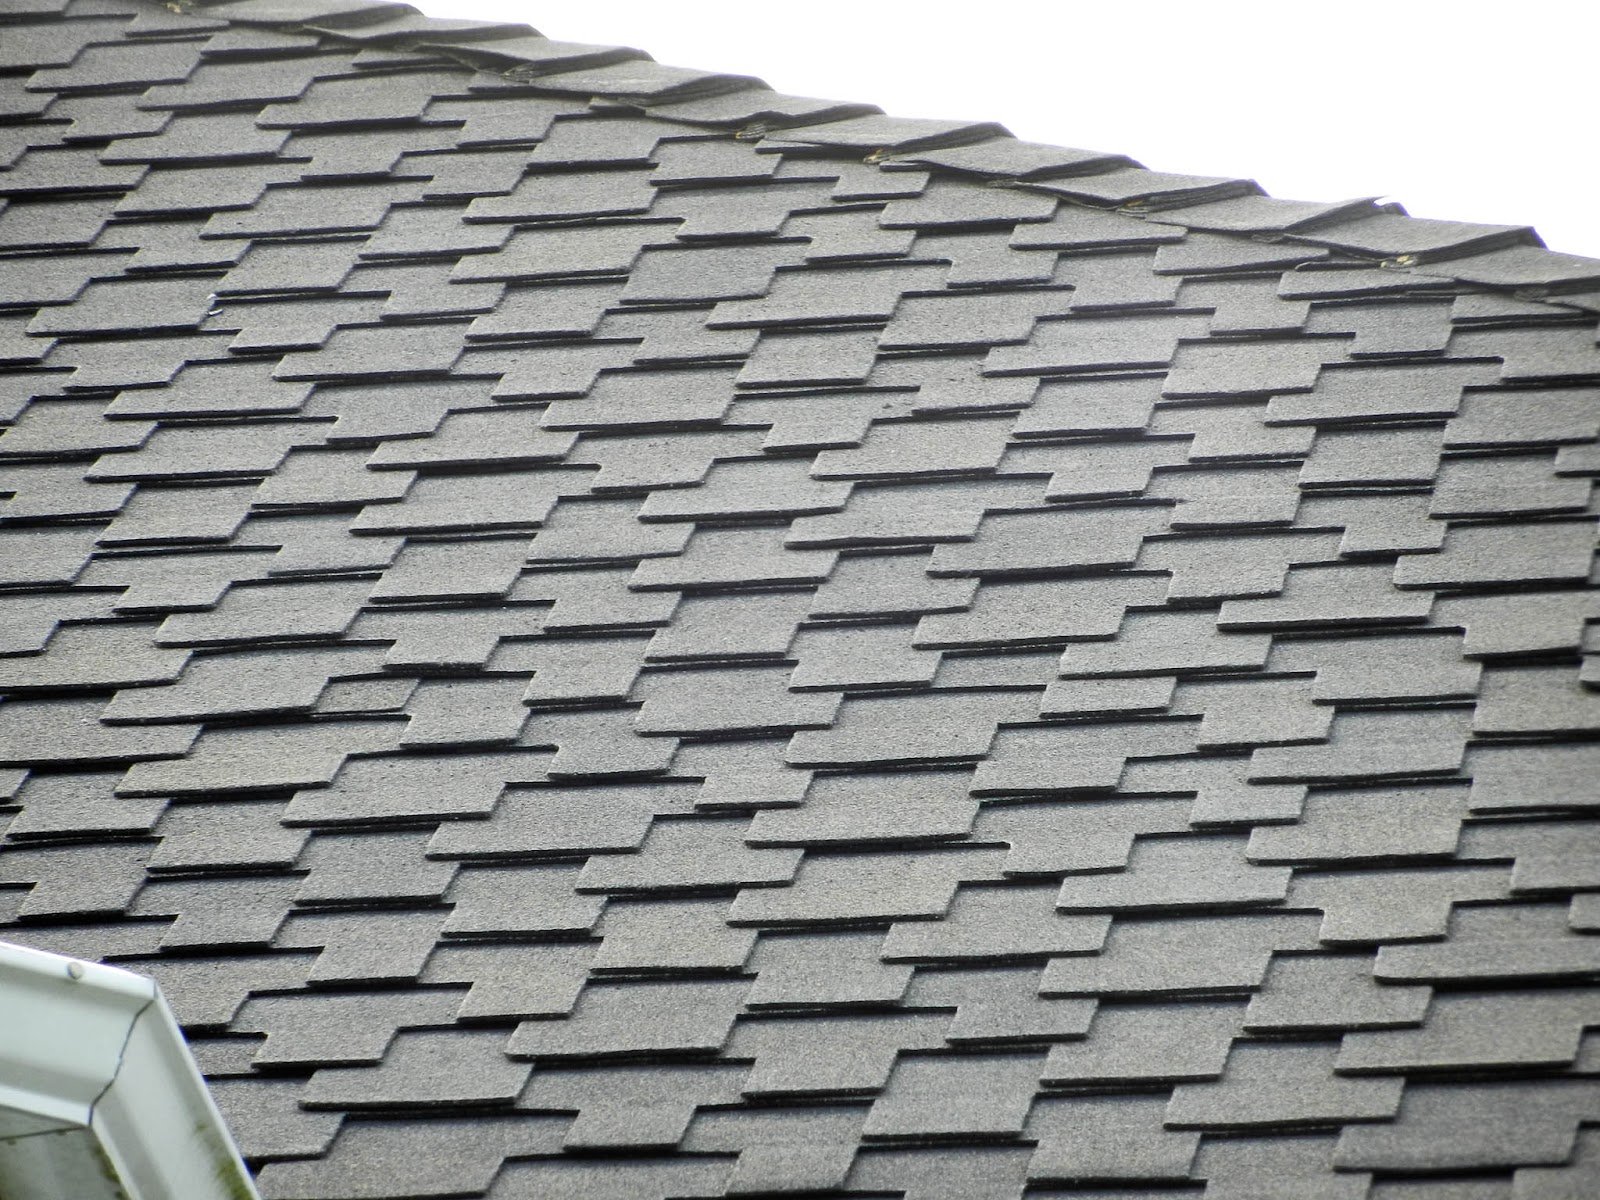 Tacoma roofing contractors presidential style shingles for Roof shingles styles